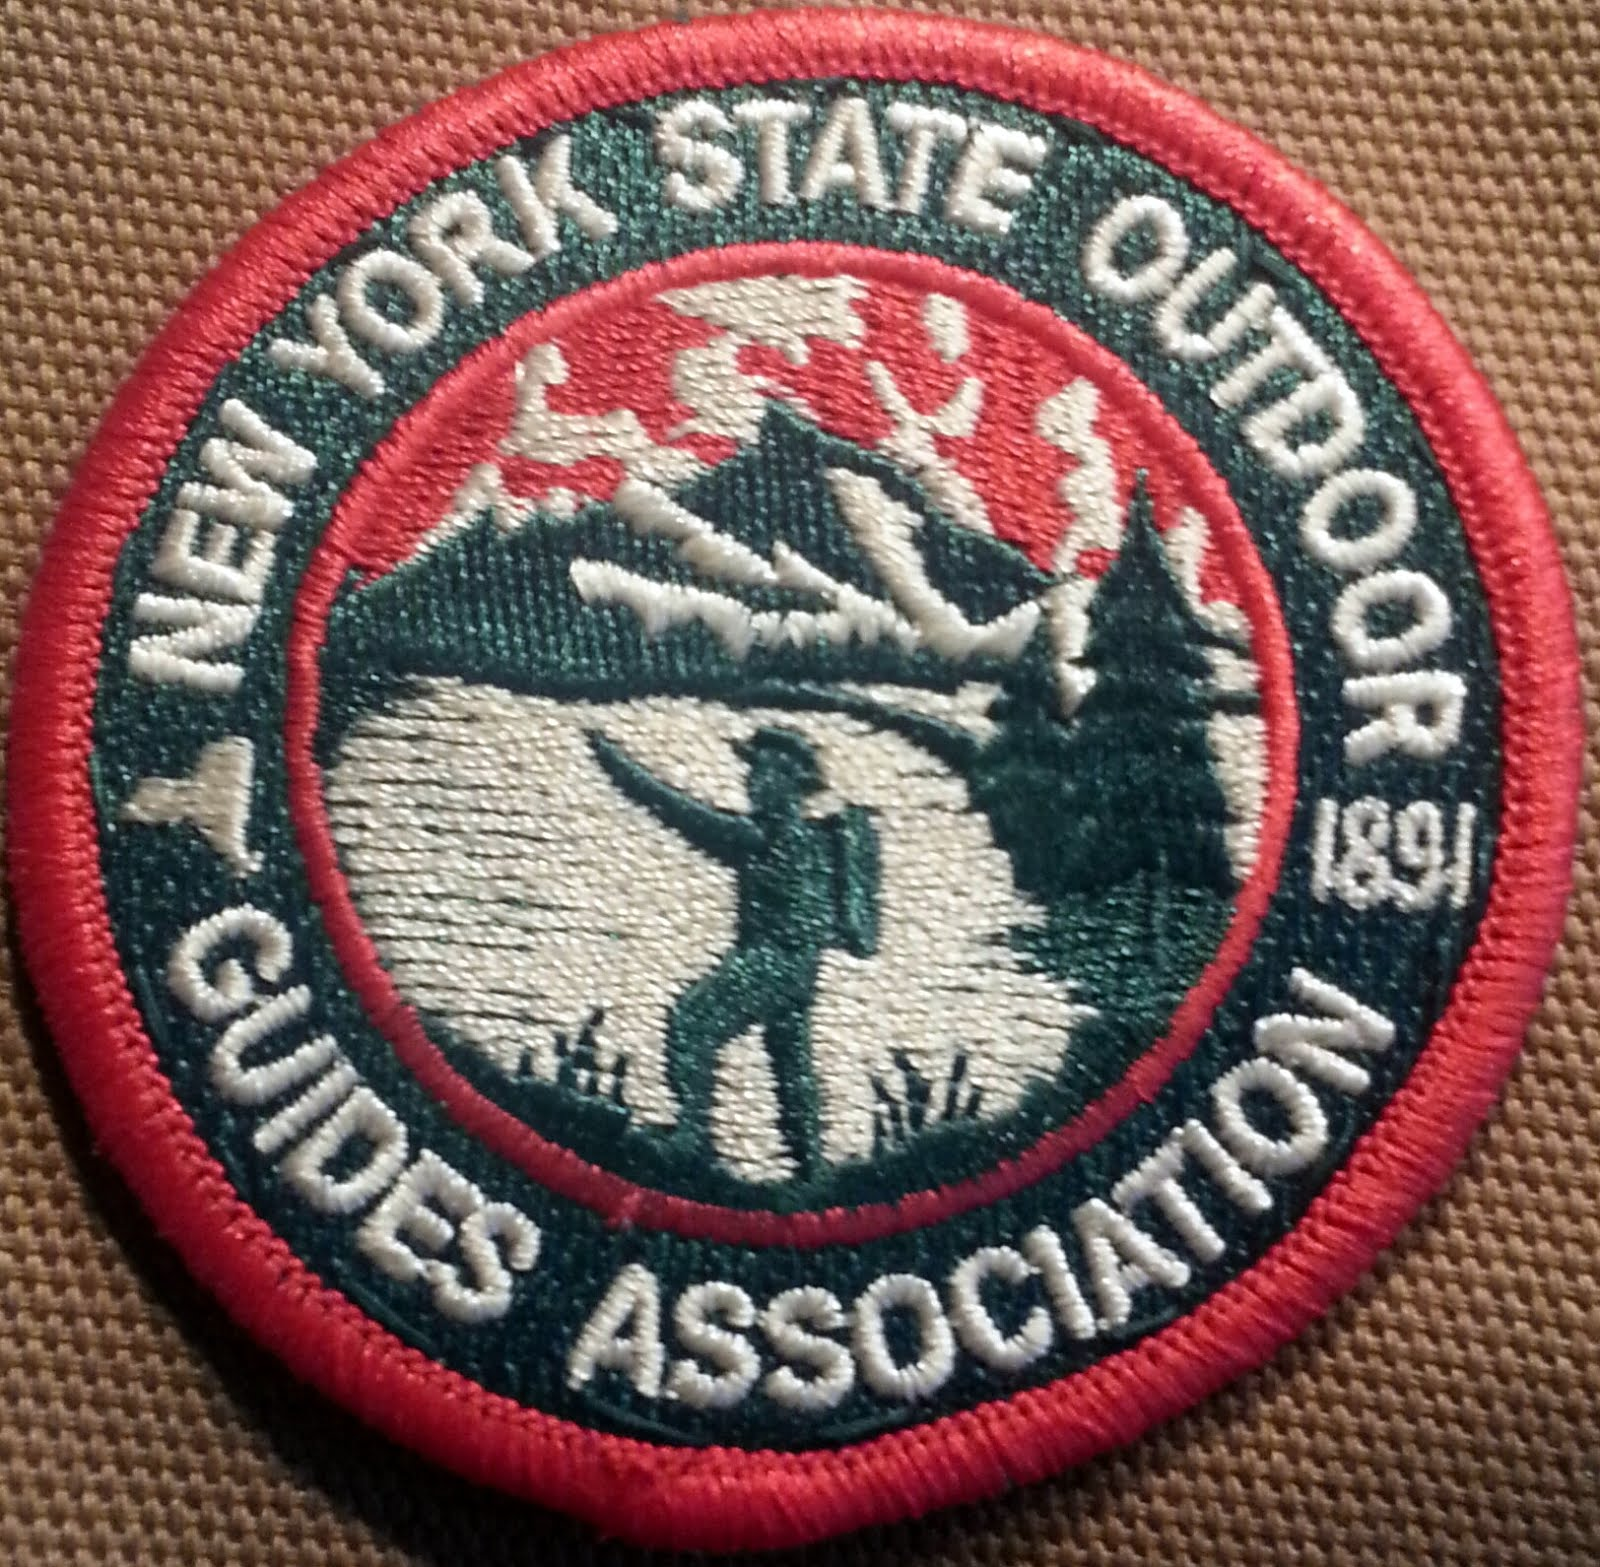 Member NY State Outdoor Guides Association